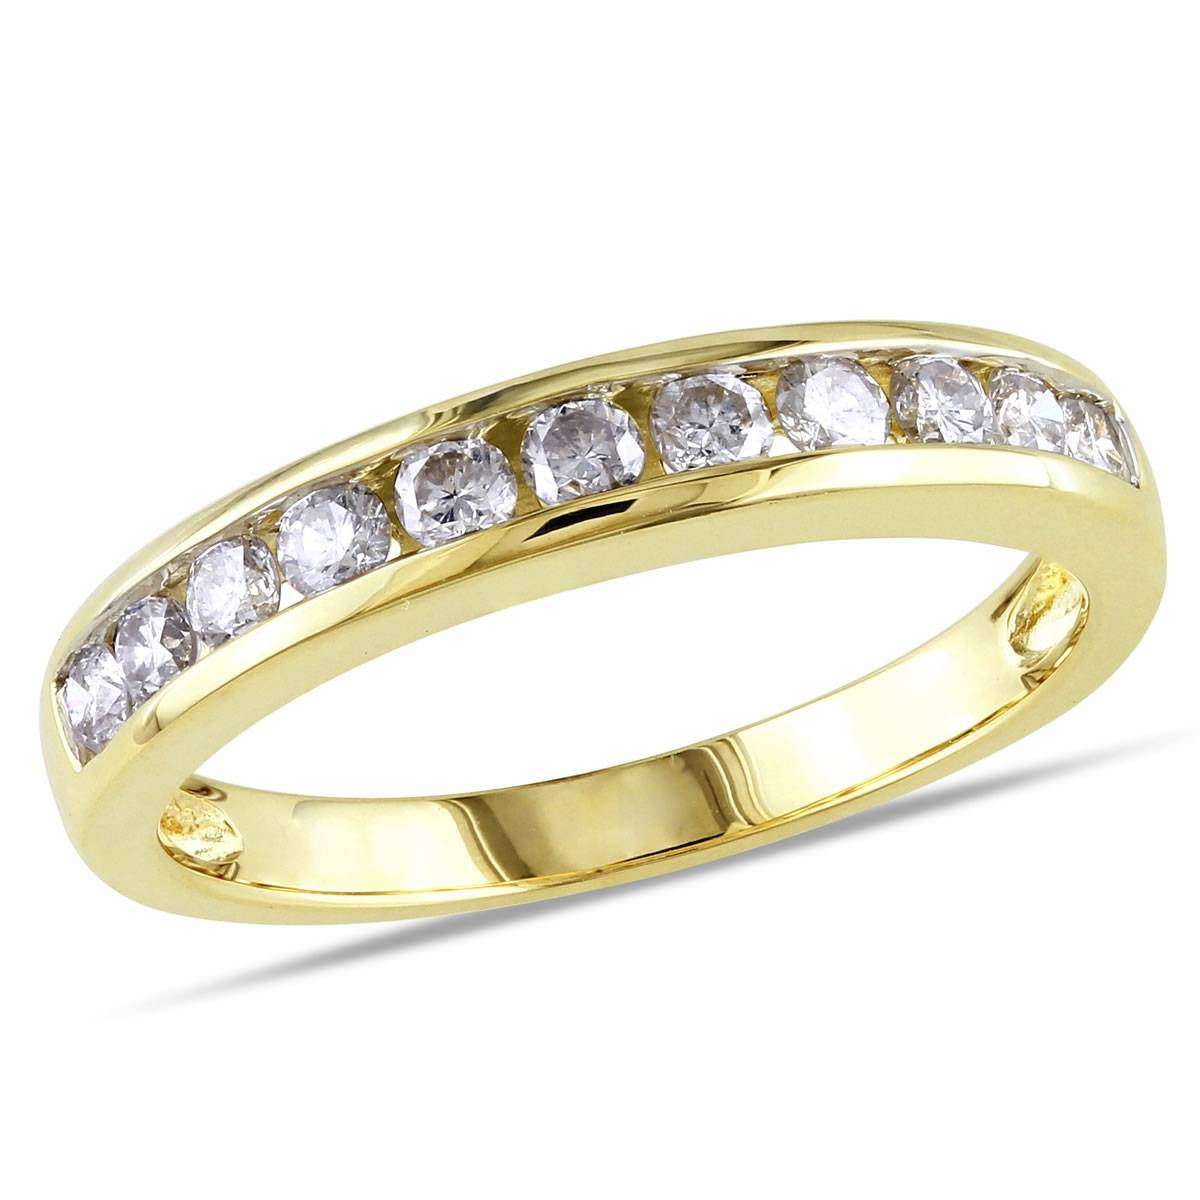 10K Yellow Gold 1/2 Ct Diamond Tw Eternity Anniversary Ring, Gh I2 Inside Latest Gold Diamond Anniversary Rings (View 2 of 25)